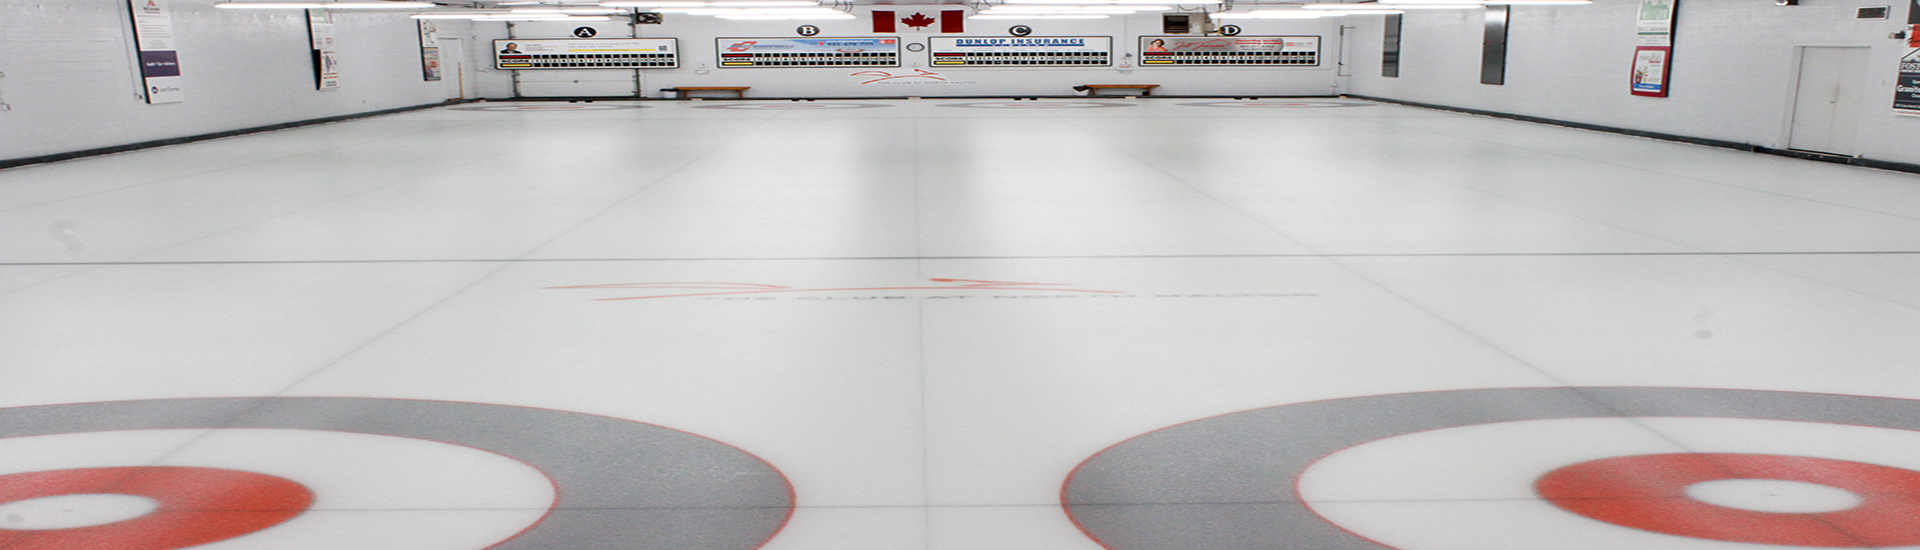 Rink_Shot_1_For_Web